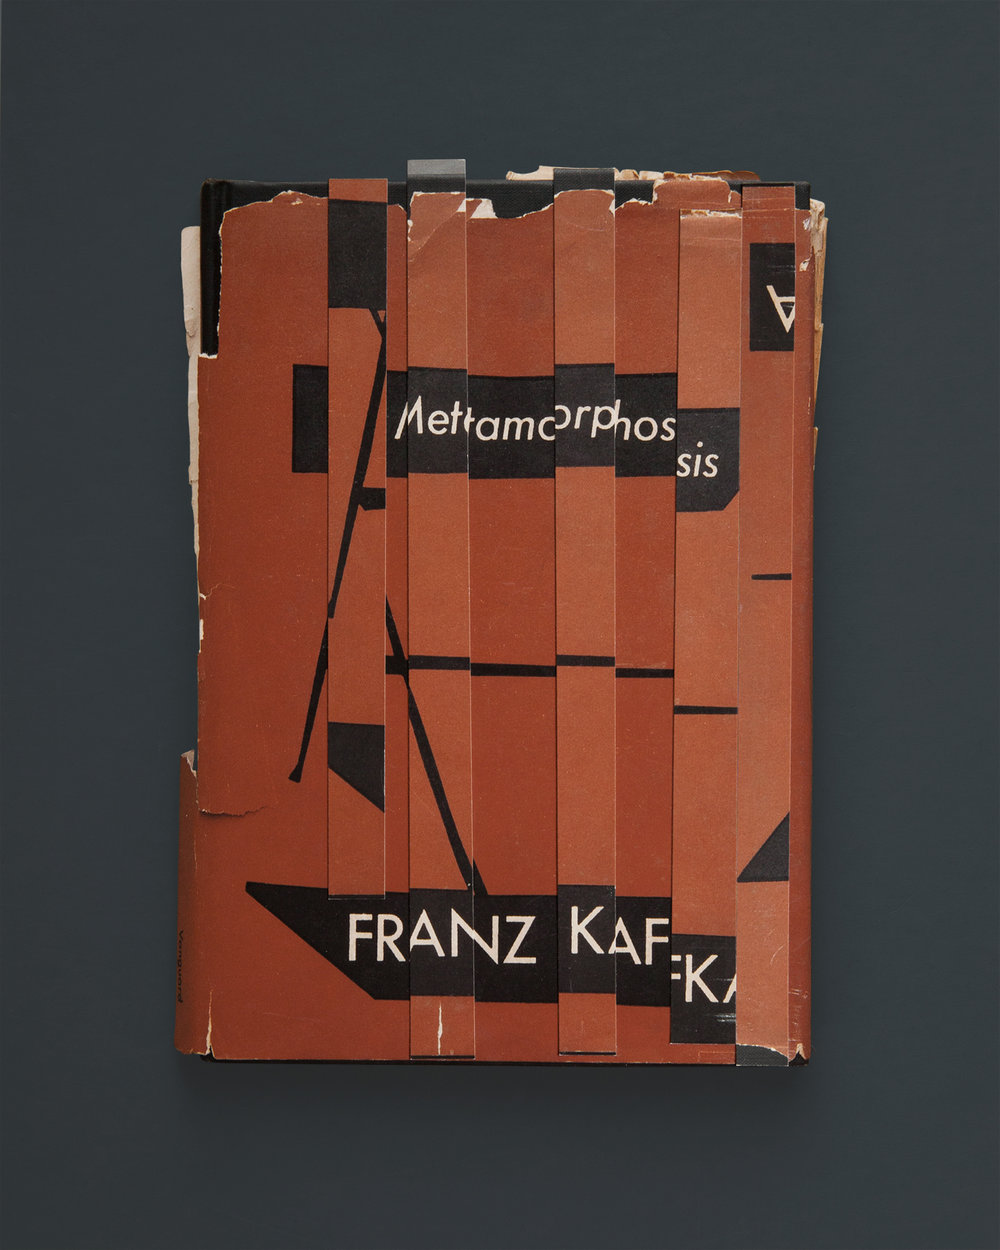 Kafka, Metamorphosis, 2018